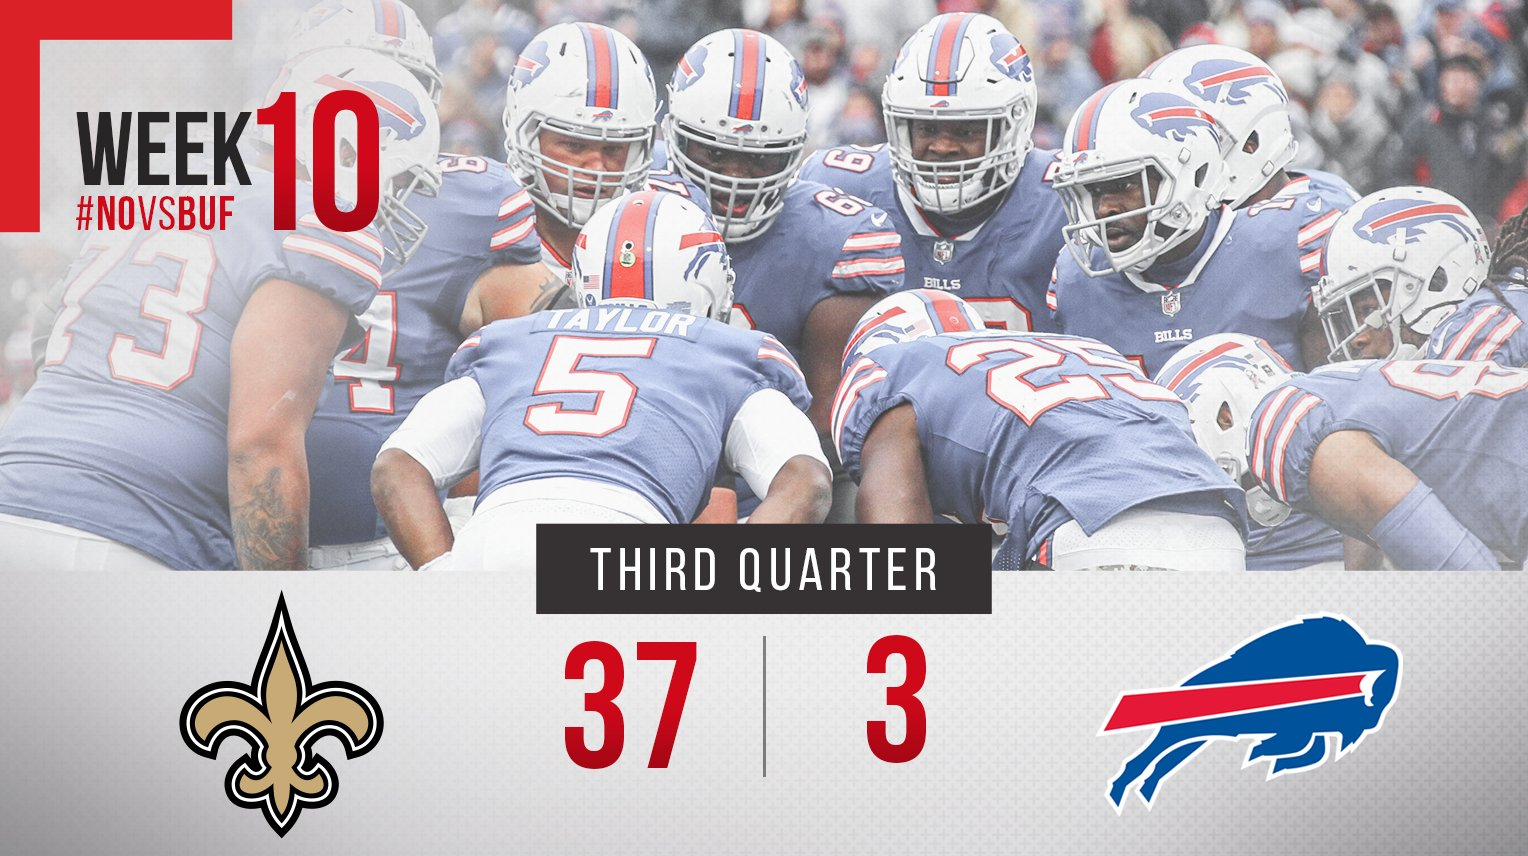 End of three. #NOvsBUF https://t.co/cKfDoB07Md